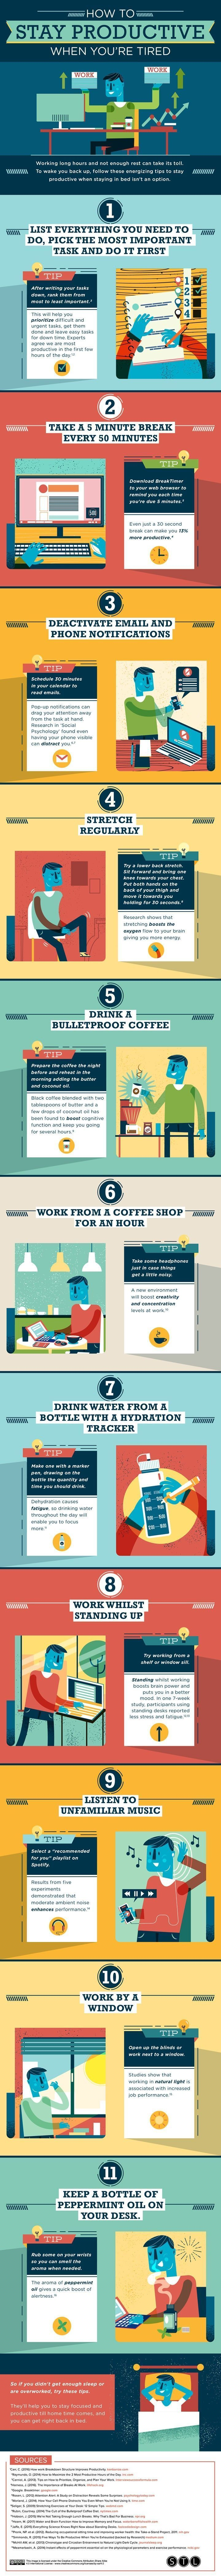 Marketing-Infographic-Productivity-tips-for-small-business-owners-entrepreneurs-and-bloggers-Wonder Marketing Infographic : Productivity tips for small business owners, entrepreneurs, and bloggers! Wonder...